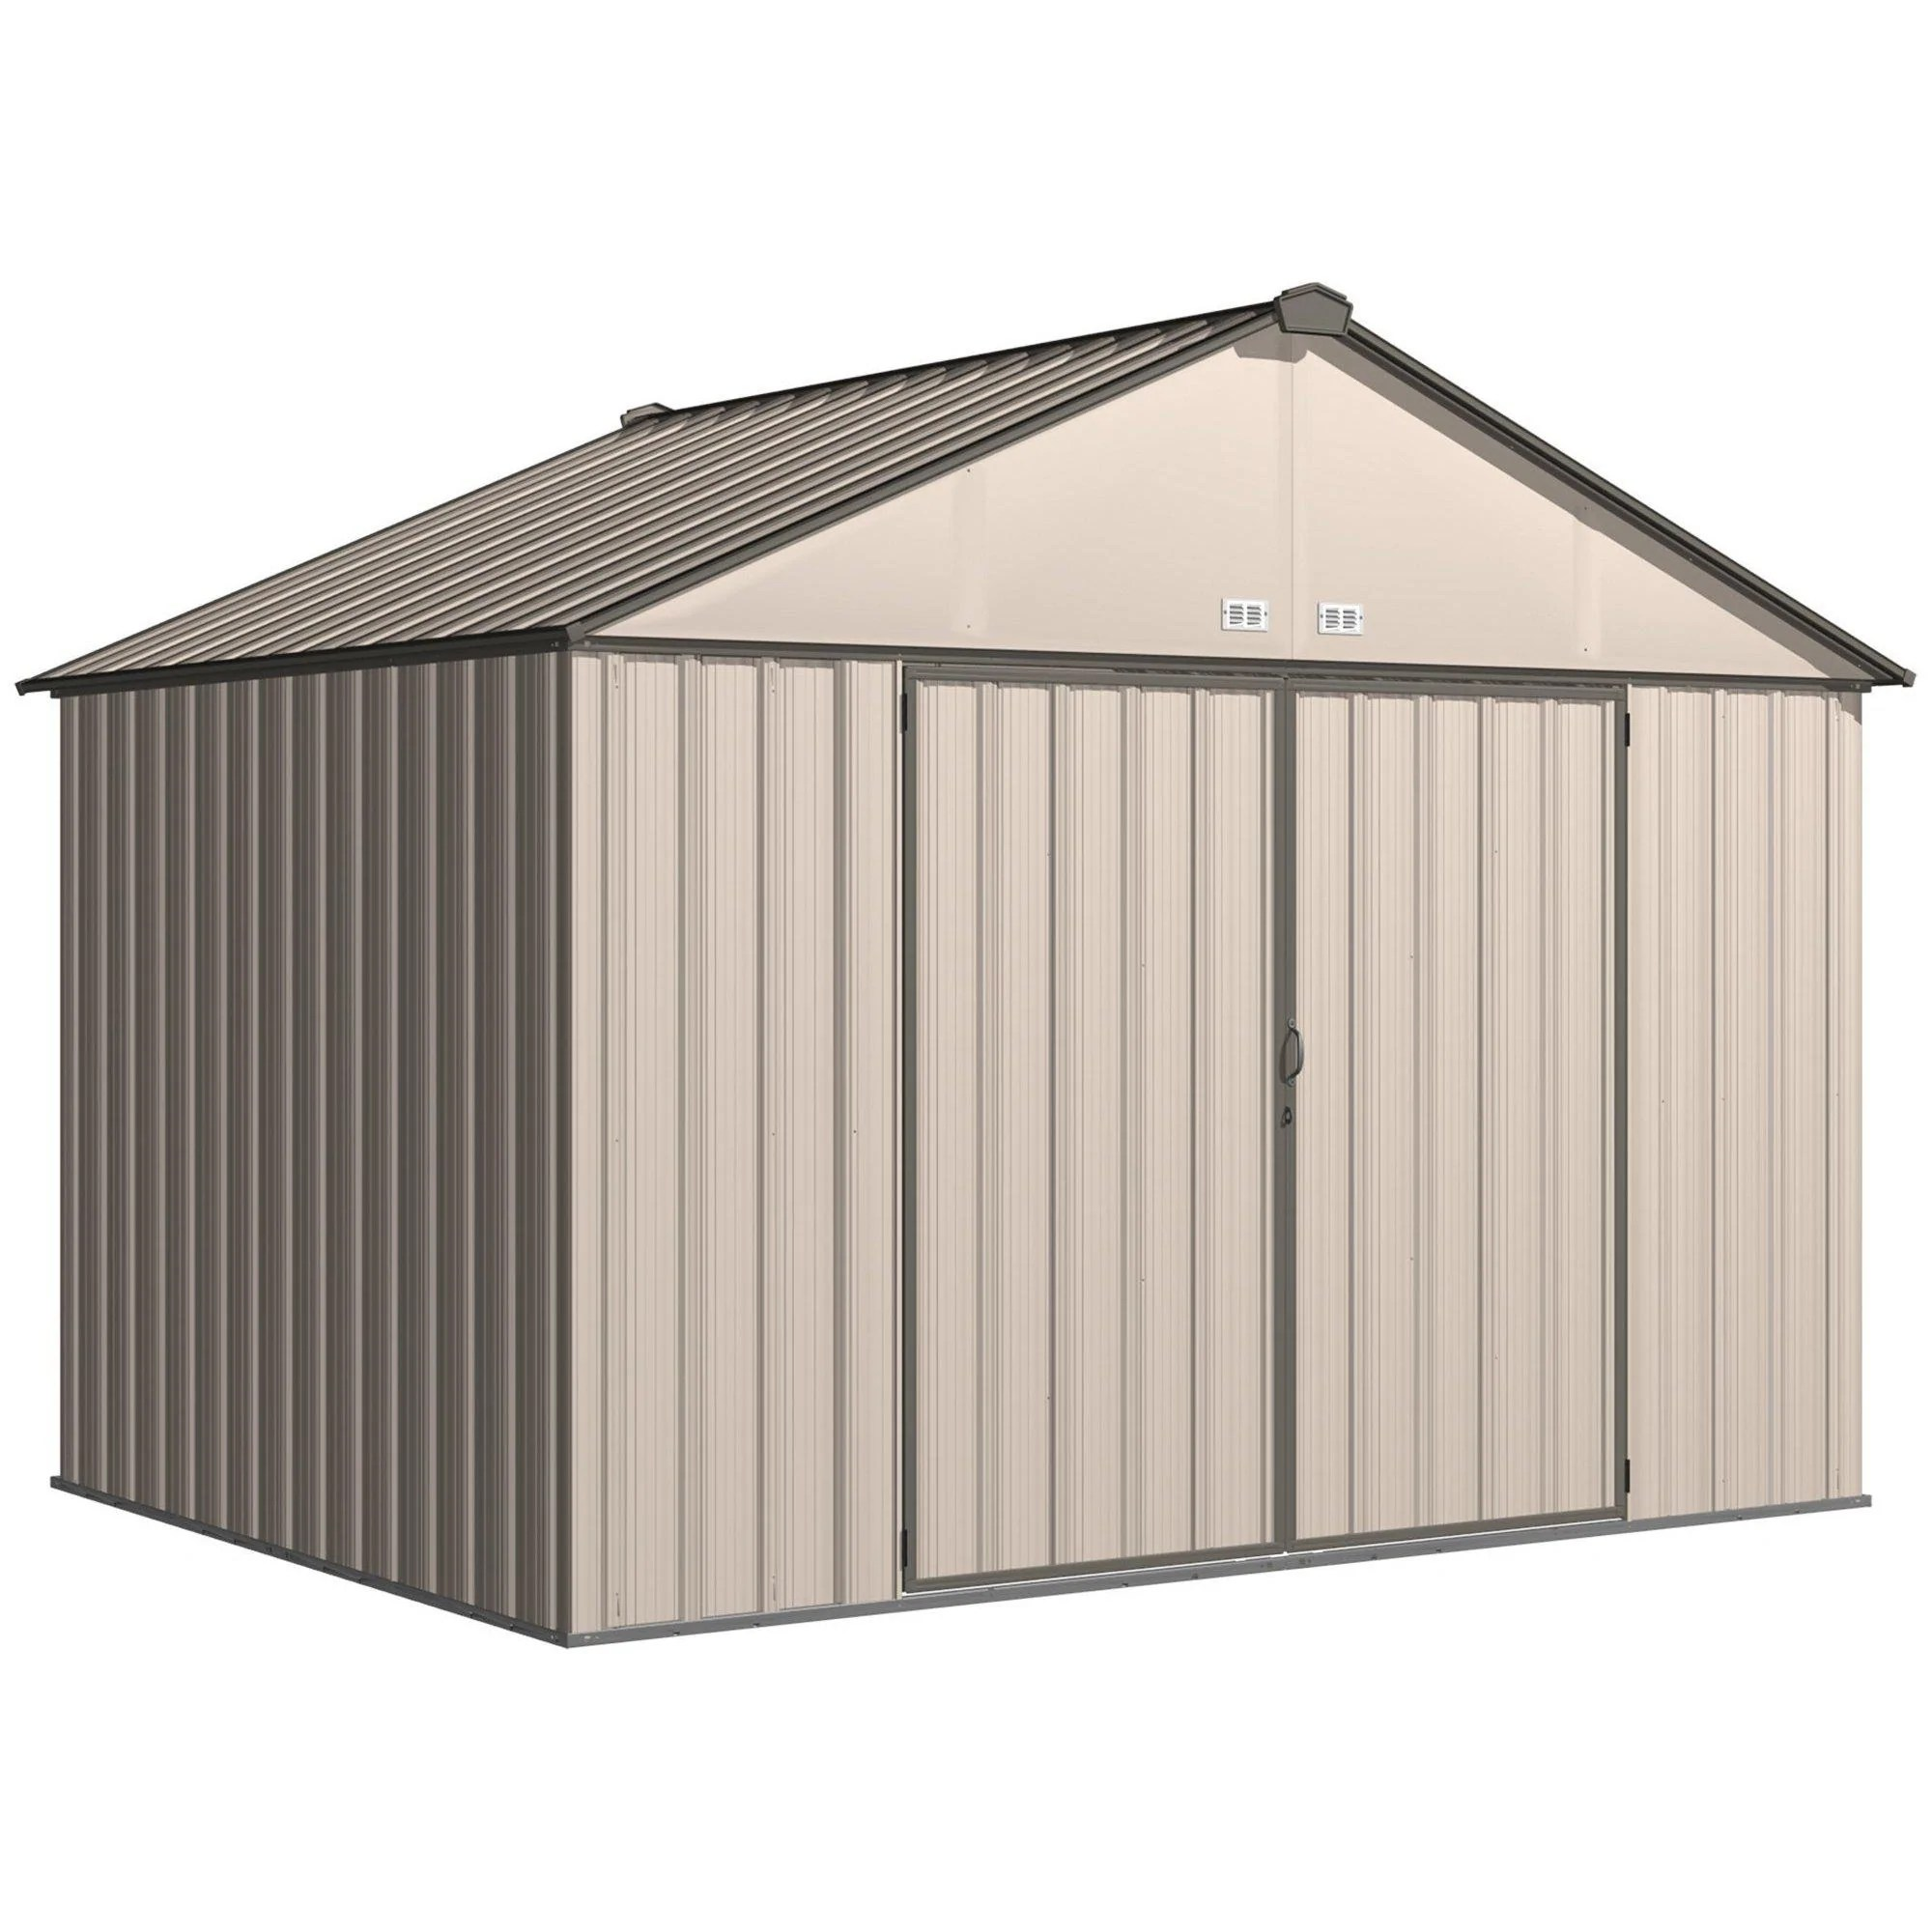 Steel Storage Sheds Arrow Ezee Shed Extra High Gable Steel Storage Shed Cream Charcoal Trim 10 X 8 Ft